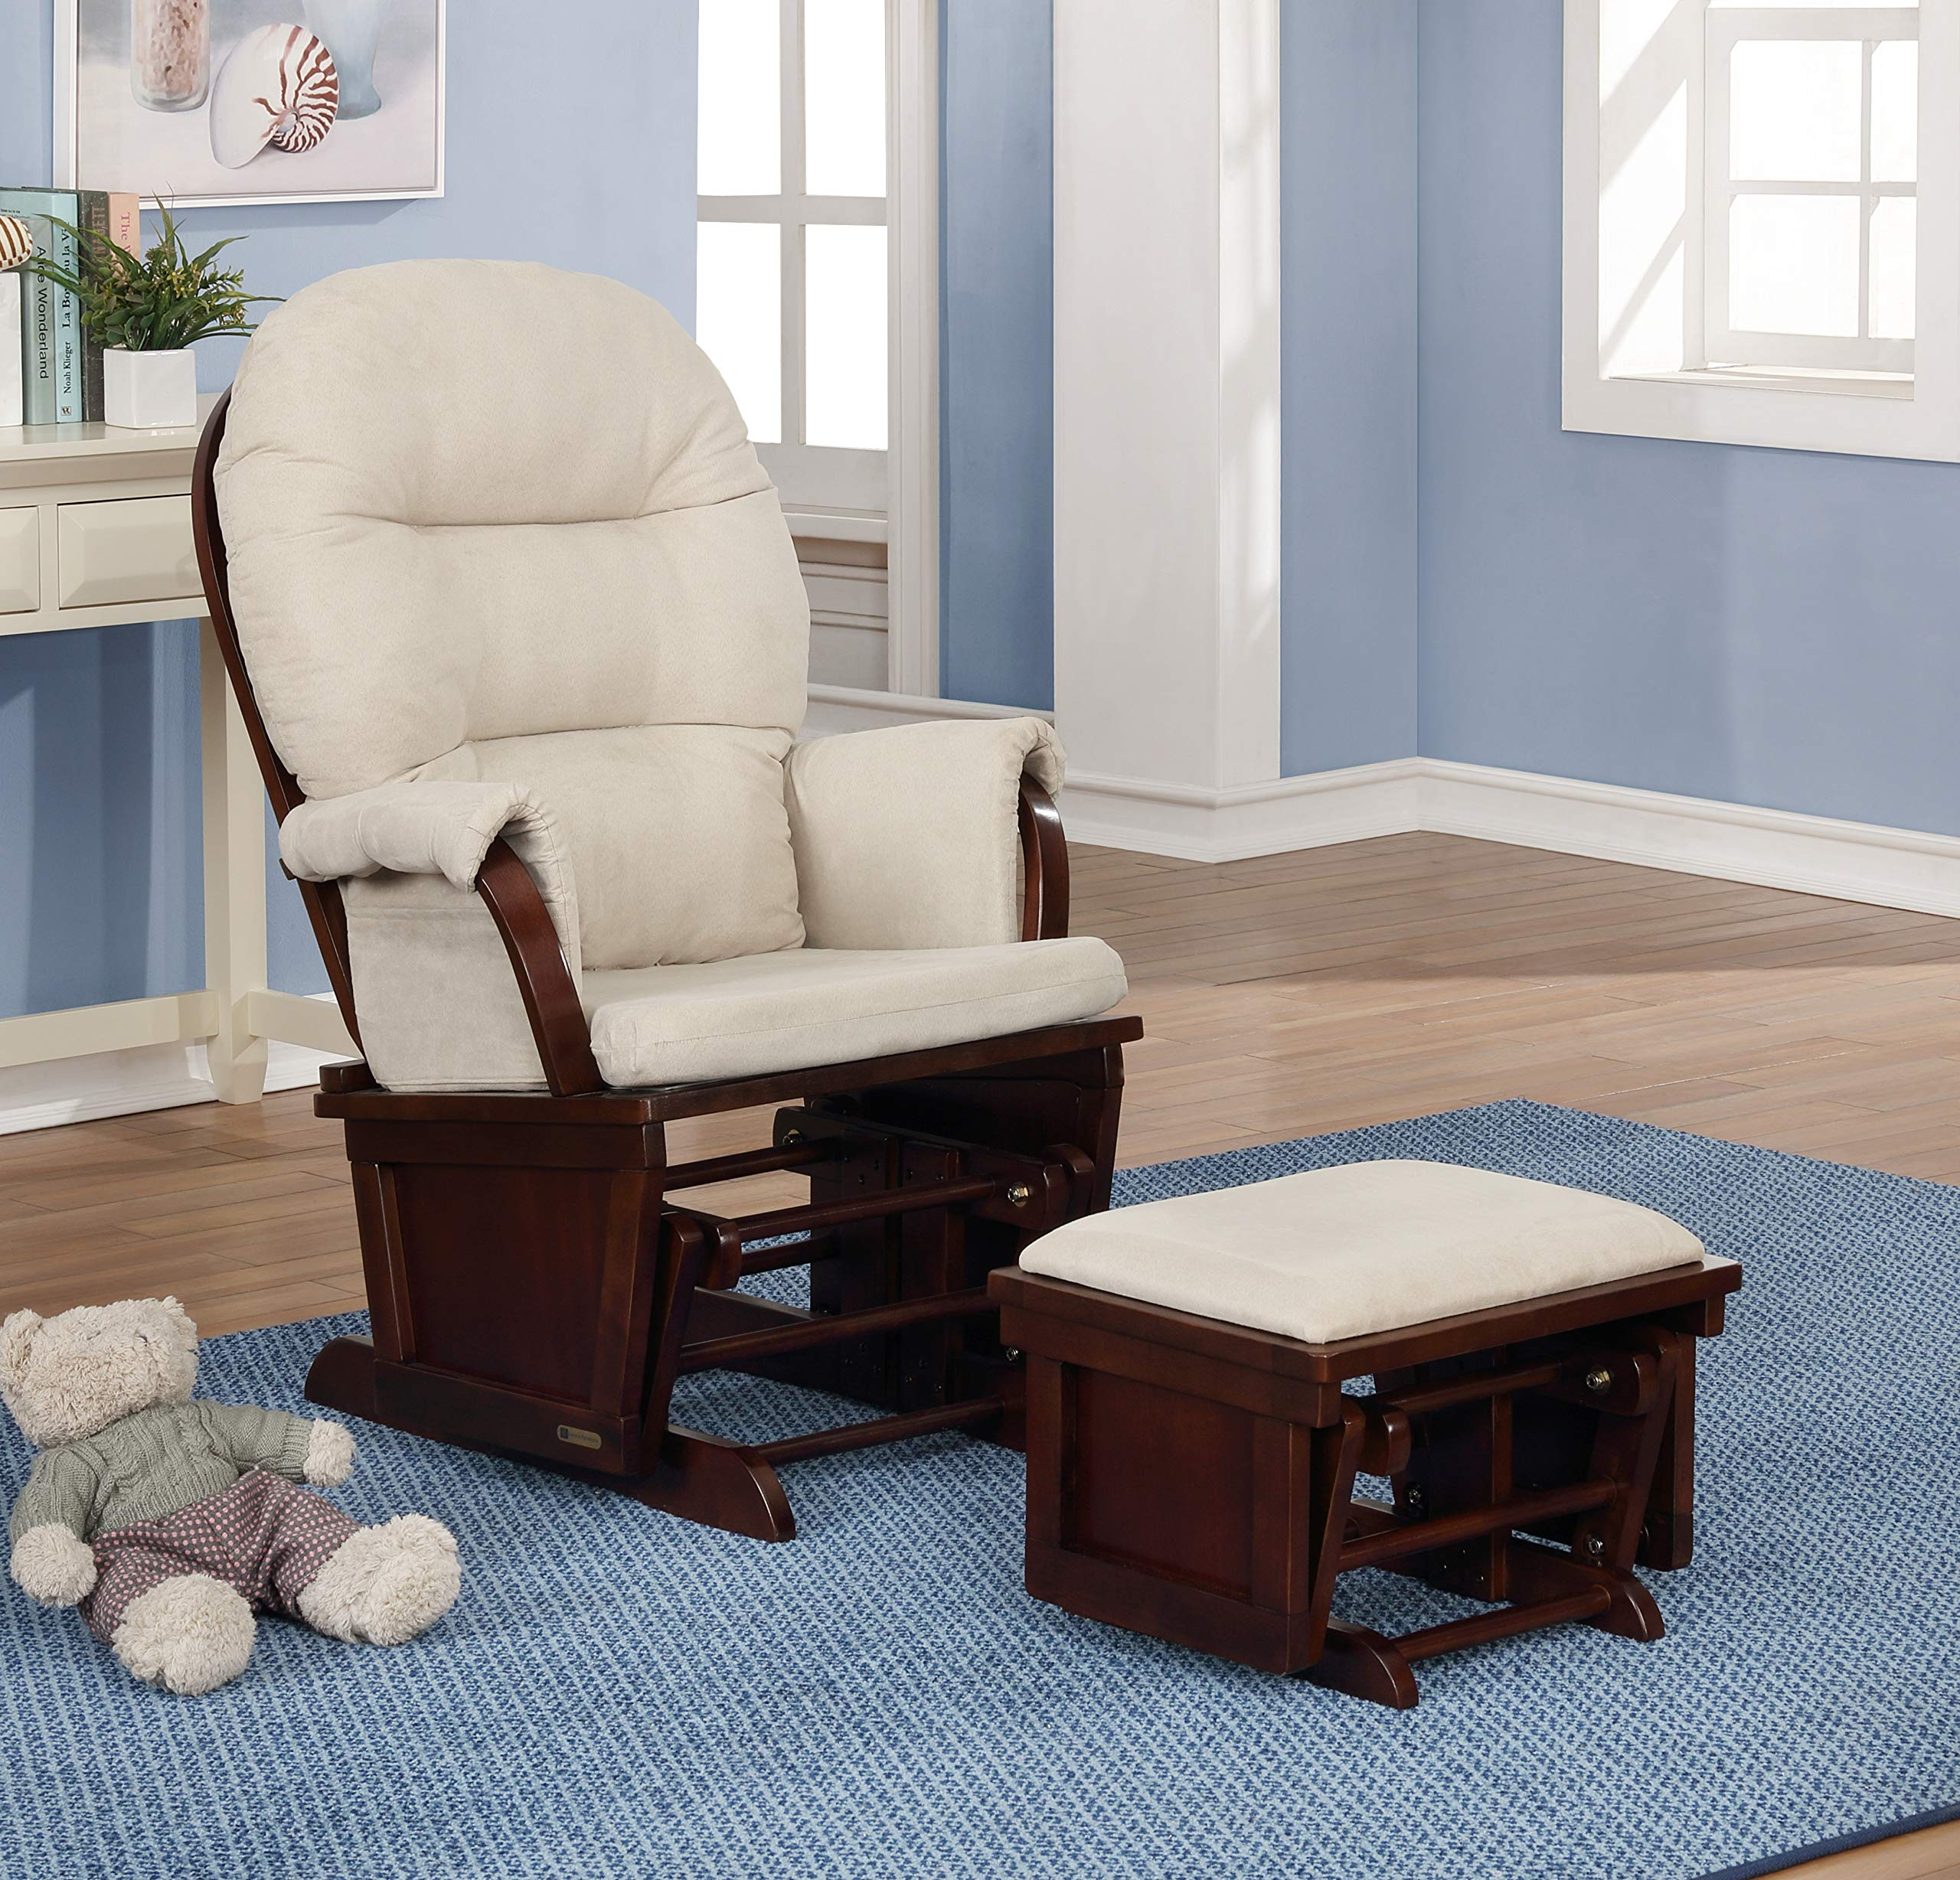 Lennox Furniture Aiden Glider Chair and Ottoman Combo, Espresso/Beige by lennox furniture